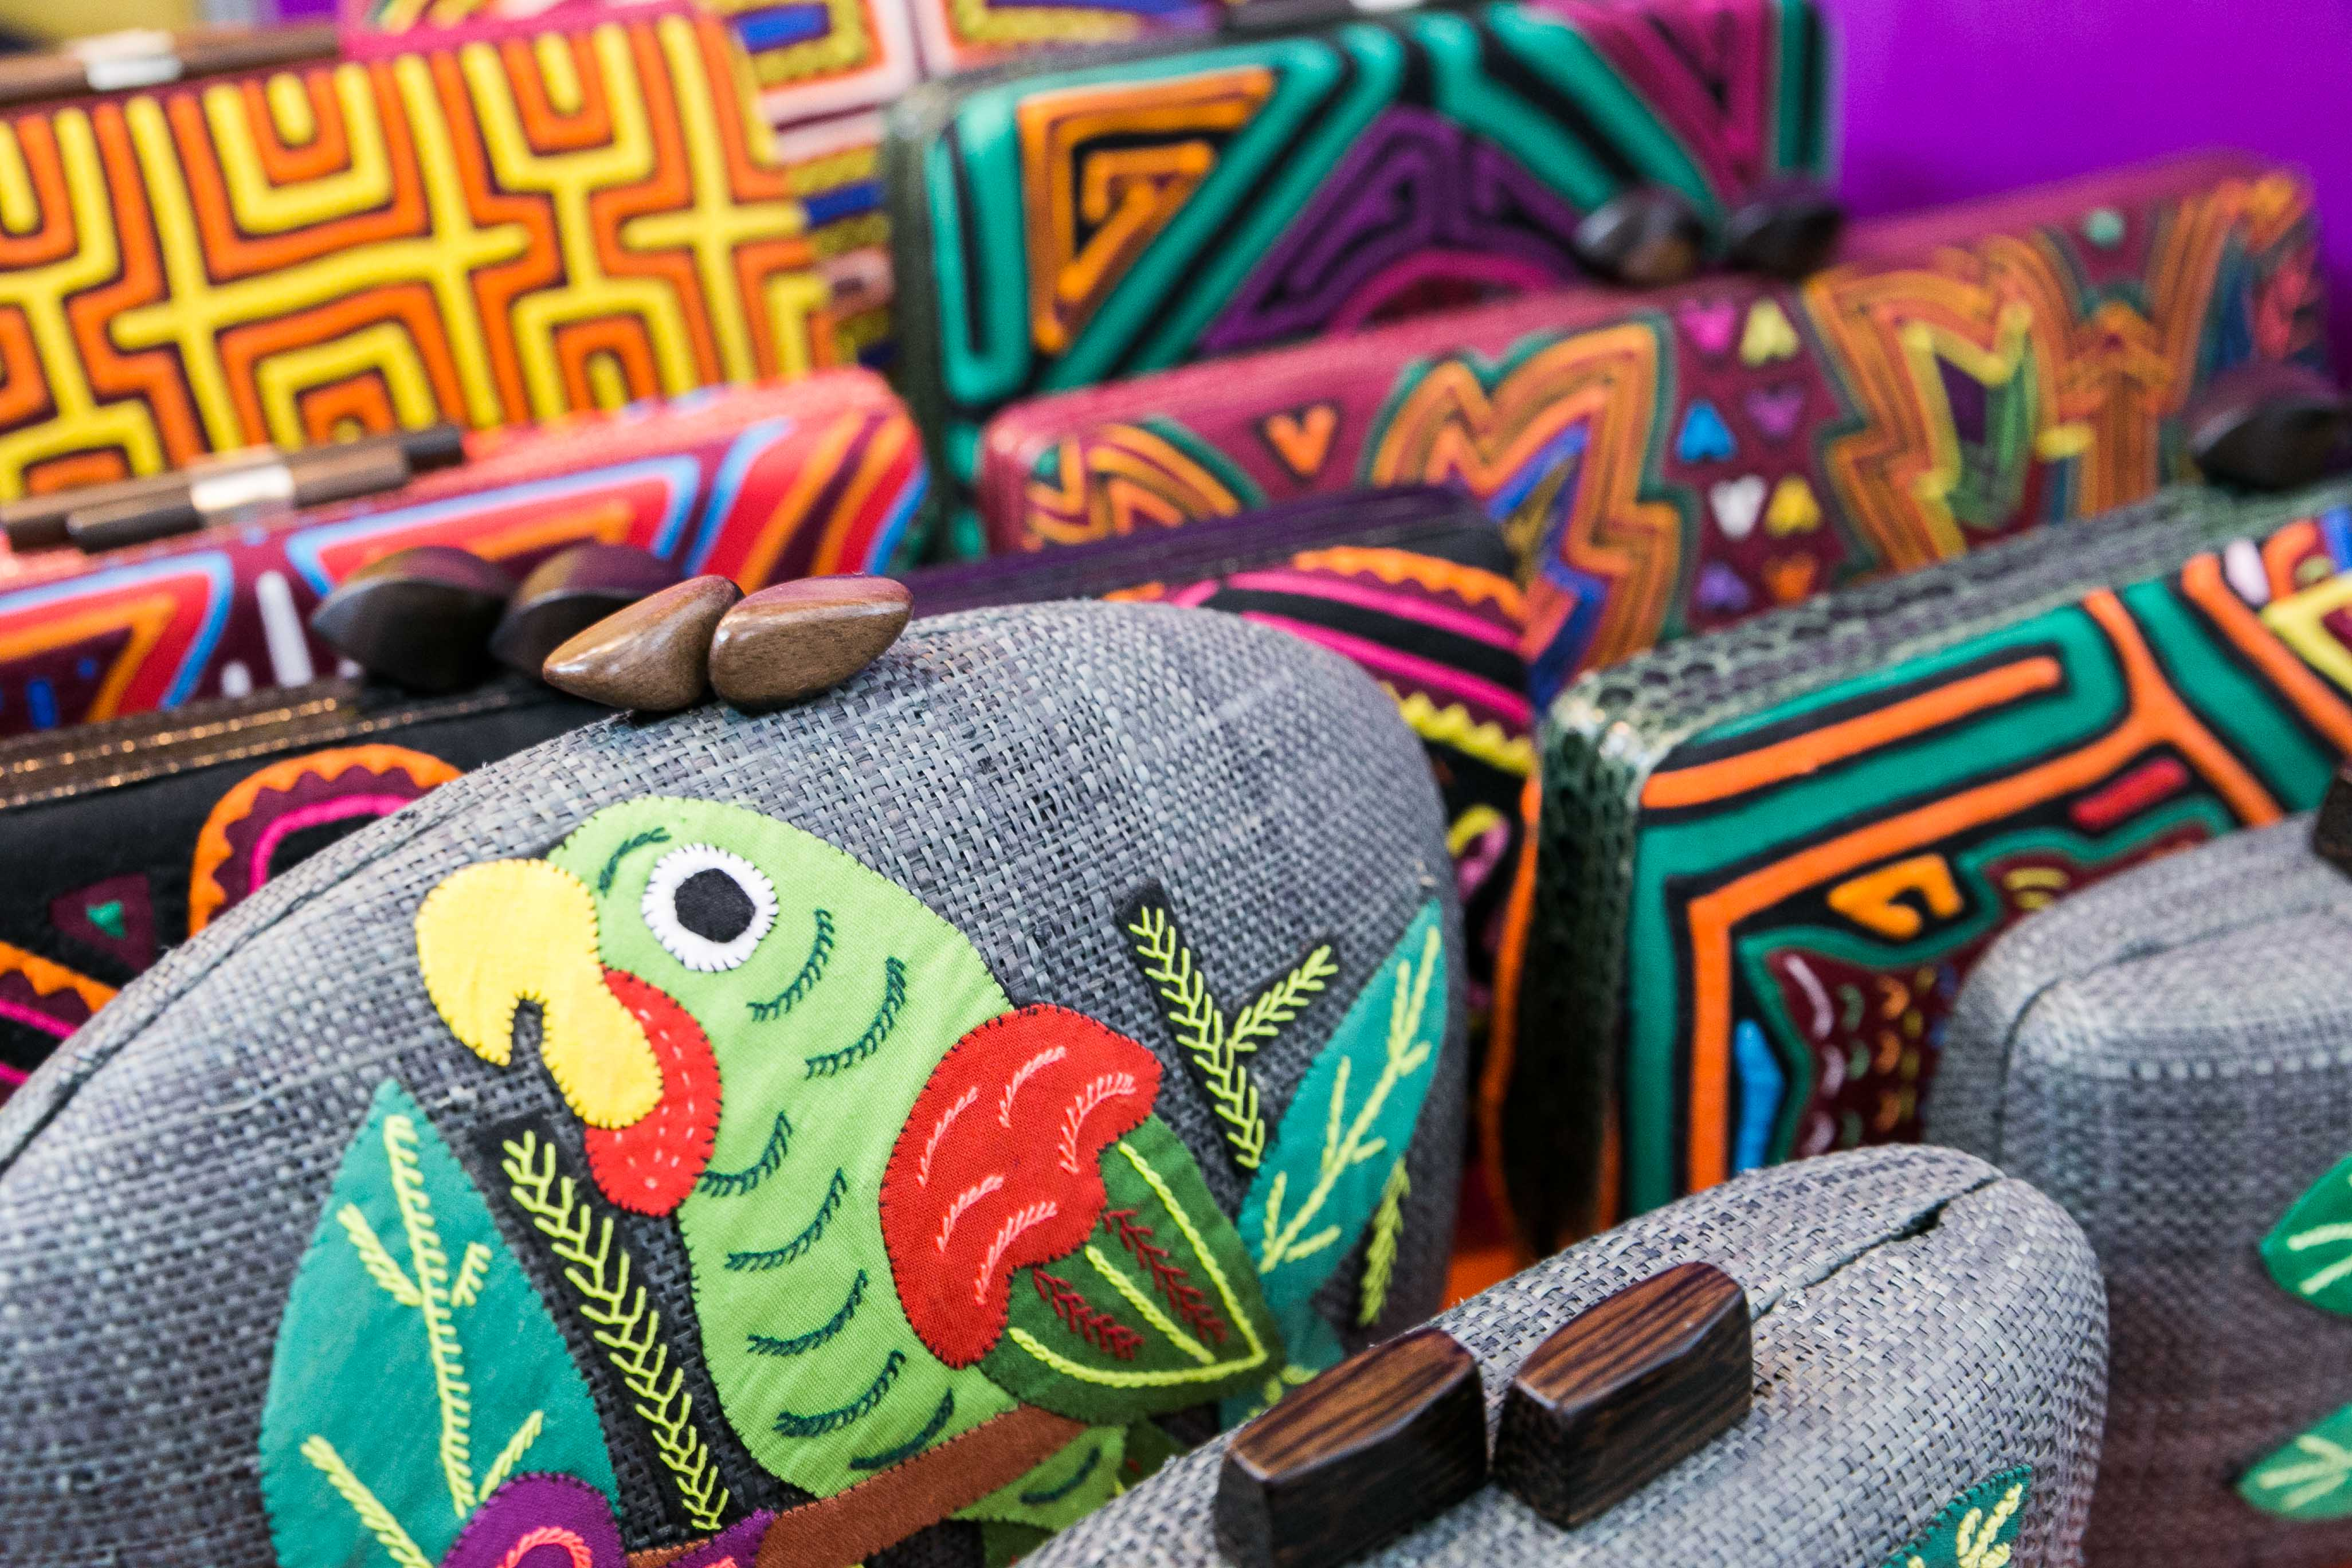 MADE IN COLOMBIA. Purses made in Colombia and based on Colombian designs are mixed with Filipino raw materials such as Kamagong wood, raffia, and mother of pearl. Photo by Pat Nabong/Rappler